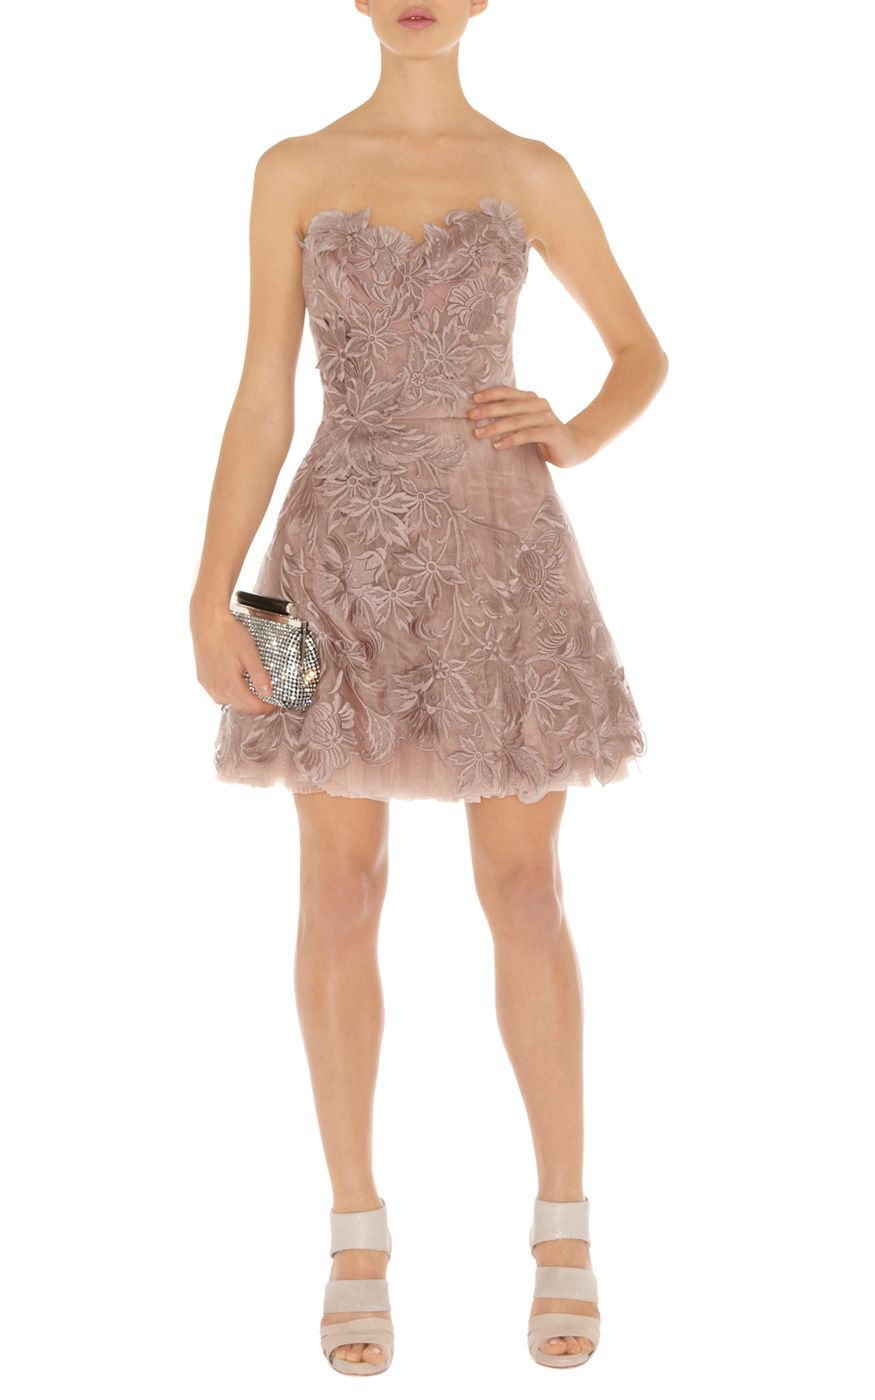 Lace cocktail dresses with sleeves uk athletics